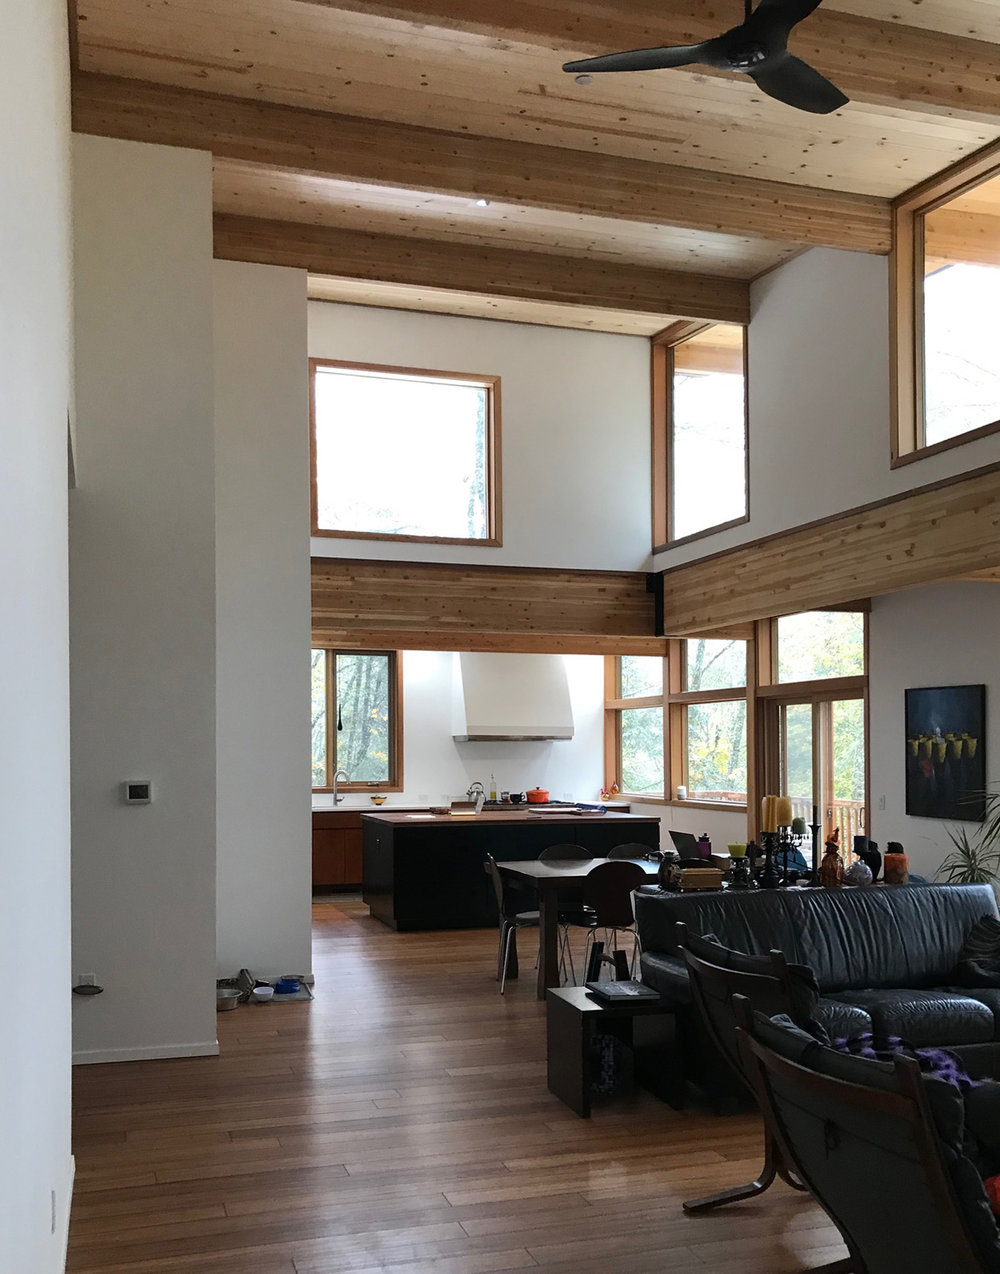 One great room. As the space and their functions go from more to less communal, this great room gets progressively narrower.